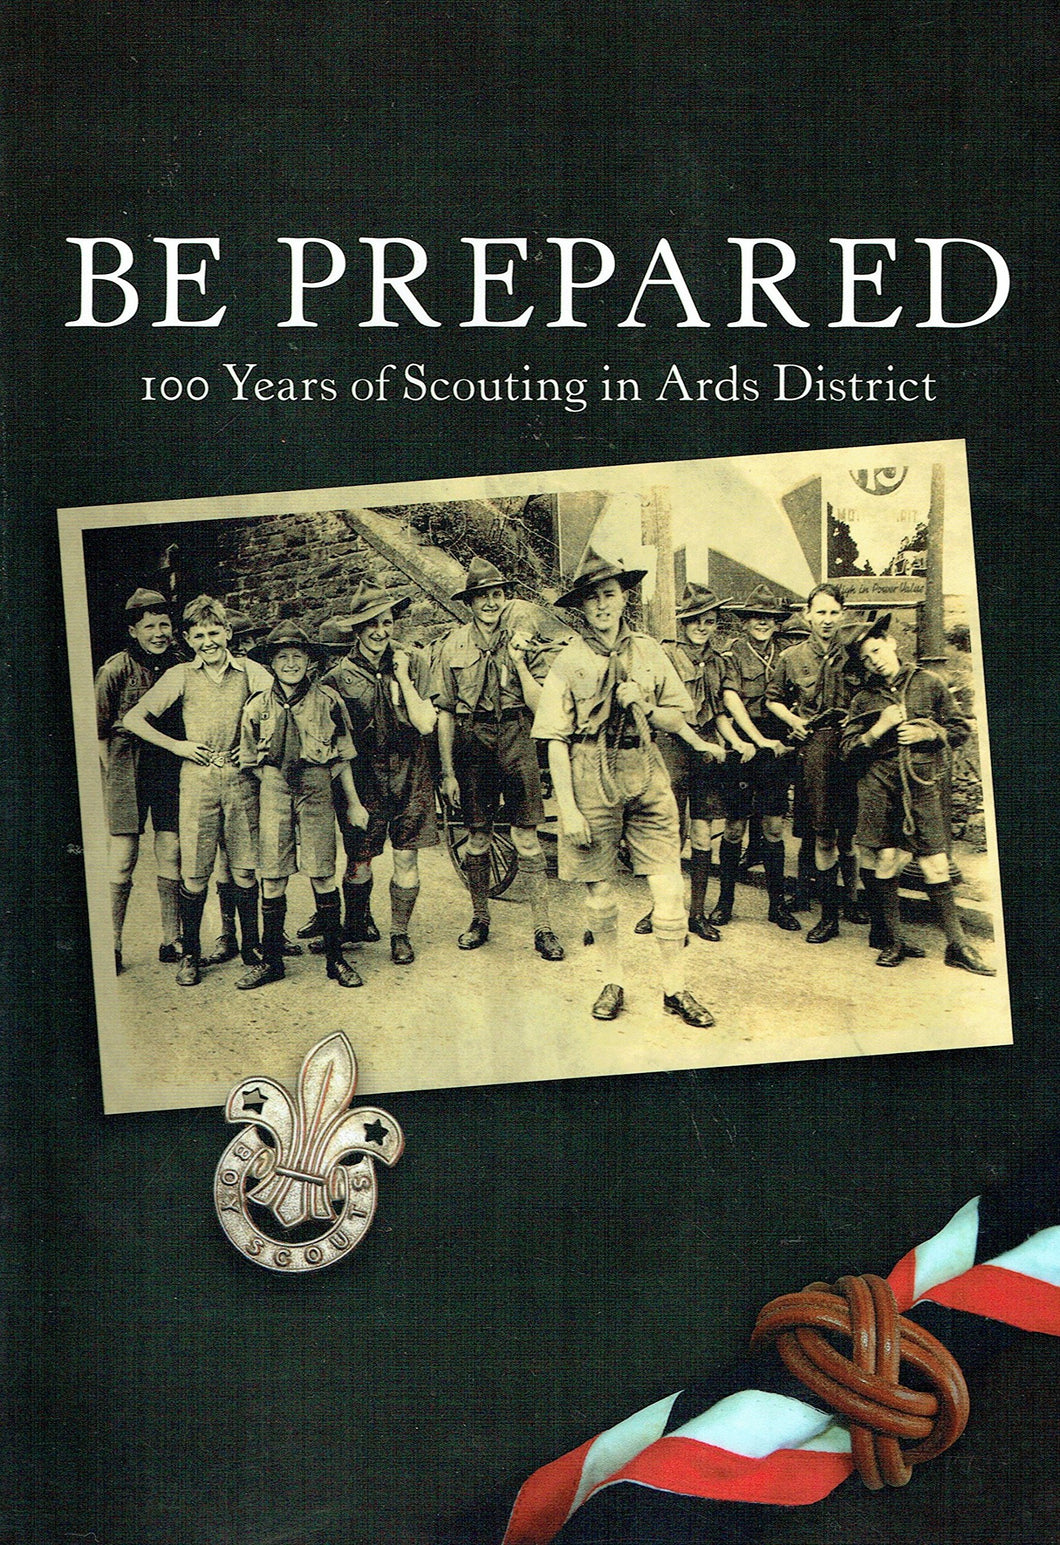 Be Prepared 100 Years of Scouting in Ards District